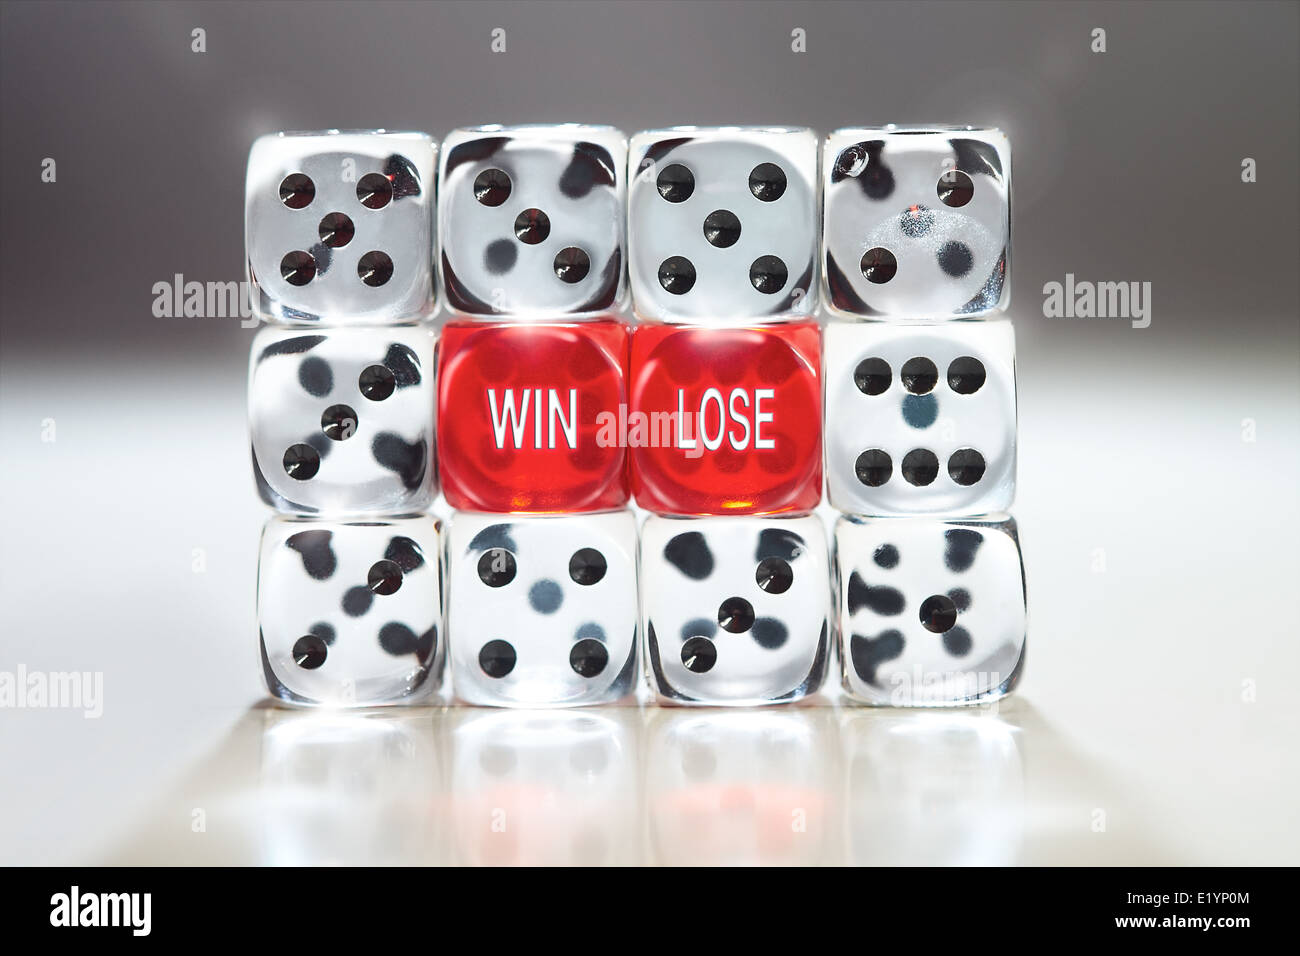 Win lose concept with two red dice supported in a wall of clear dice. - Stock Image